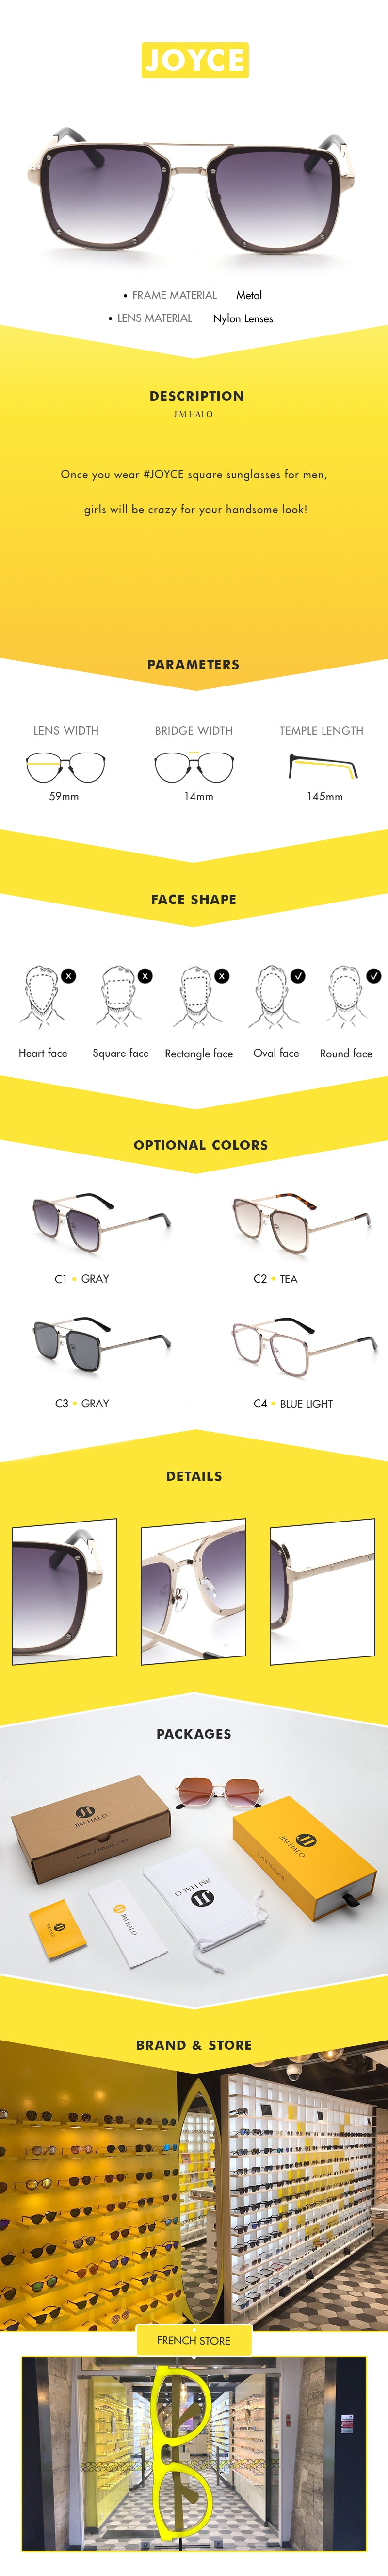 Once you wear #JOYCE square sunglasses for men, girls will be crazy for your handsome look!